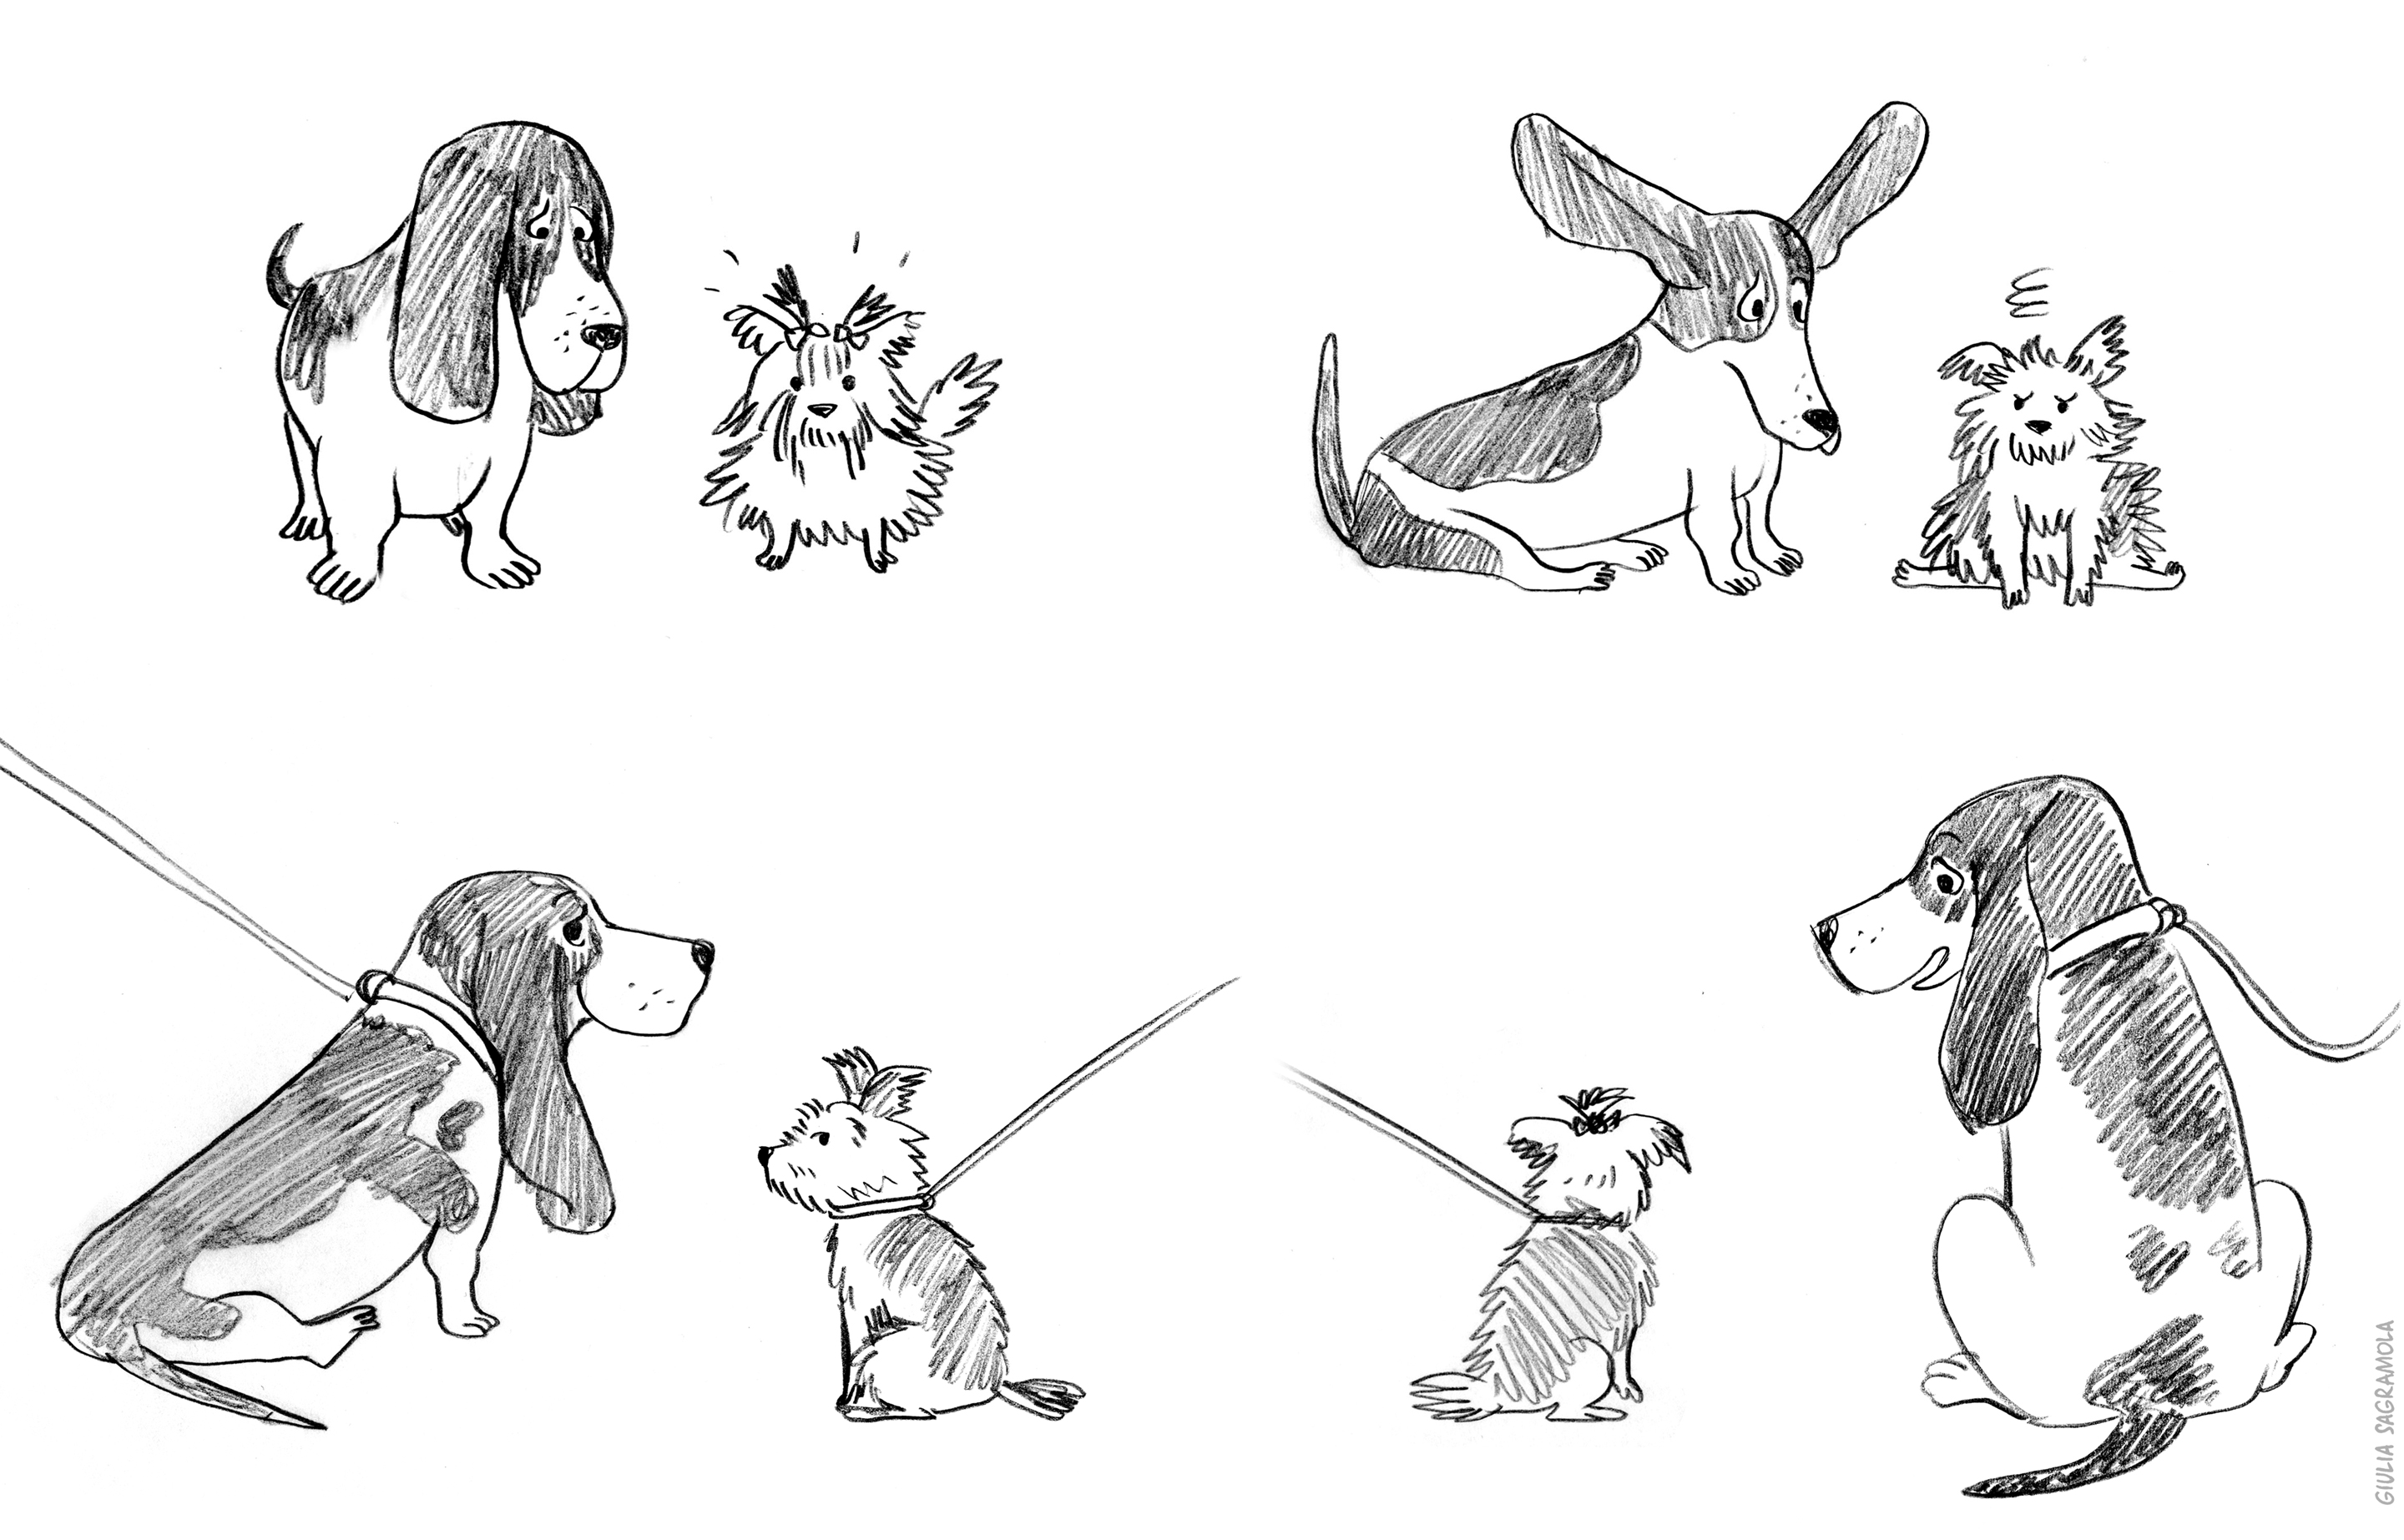 barkers_sketches_for_website02